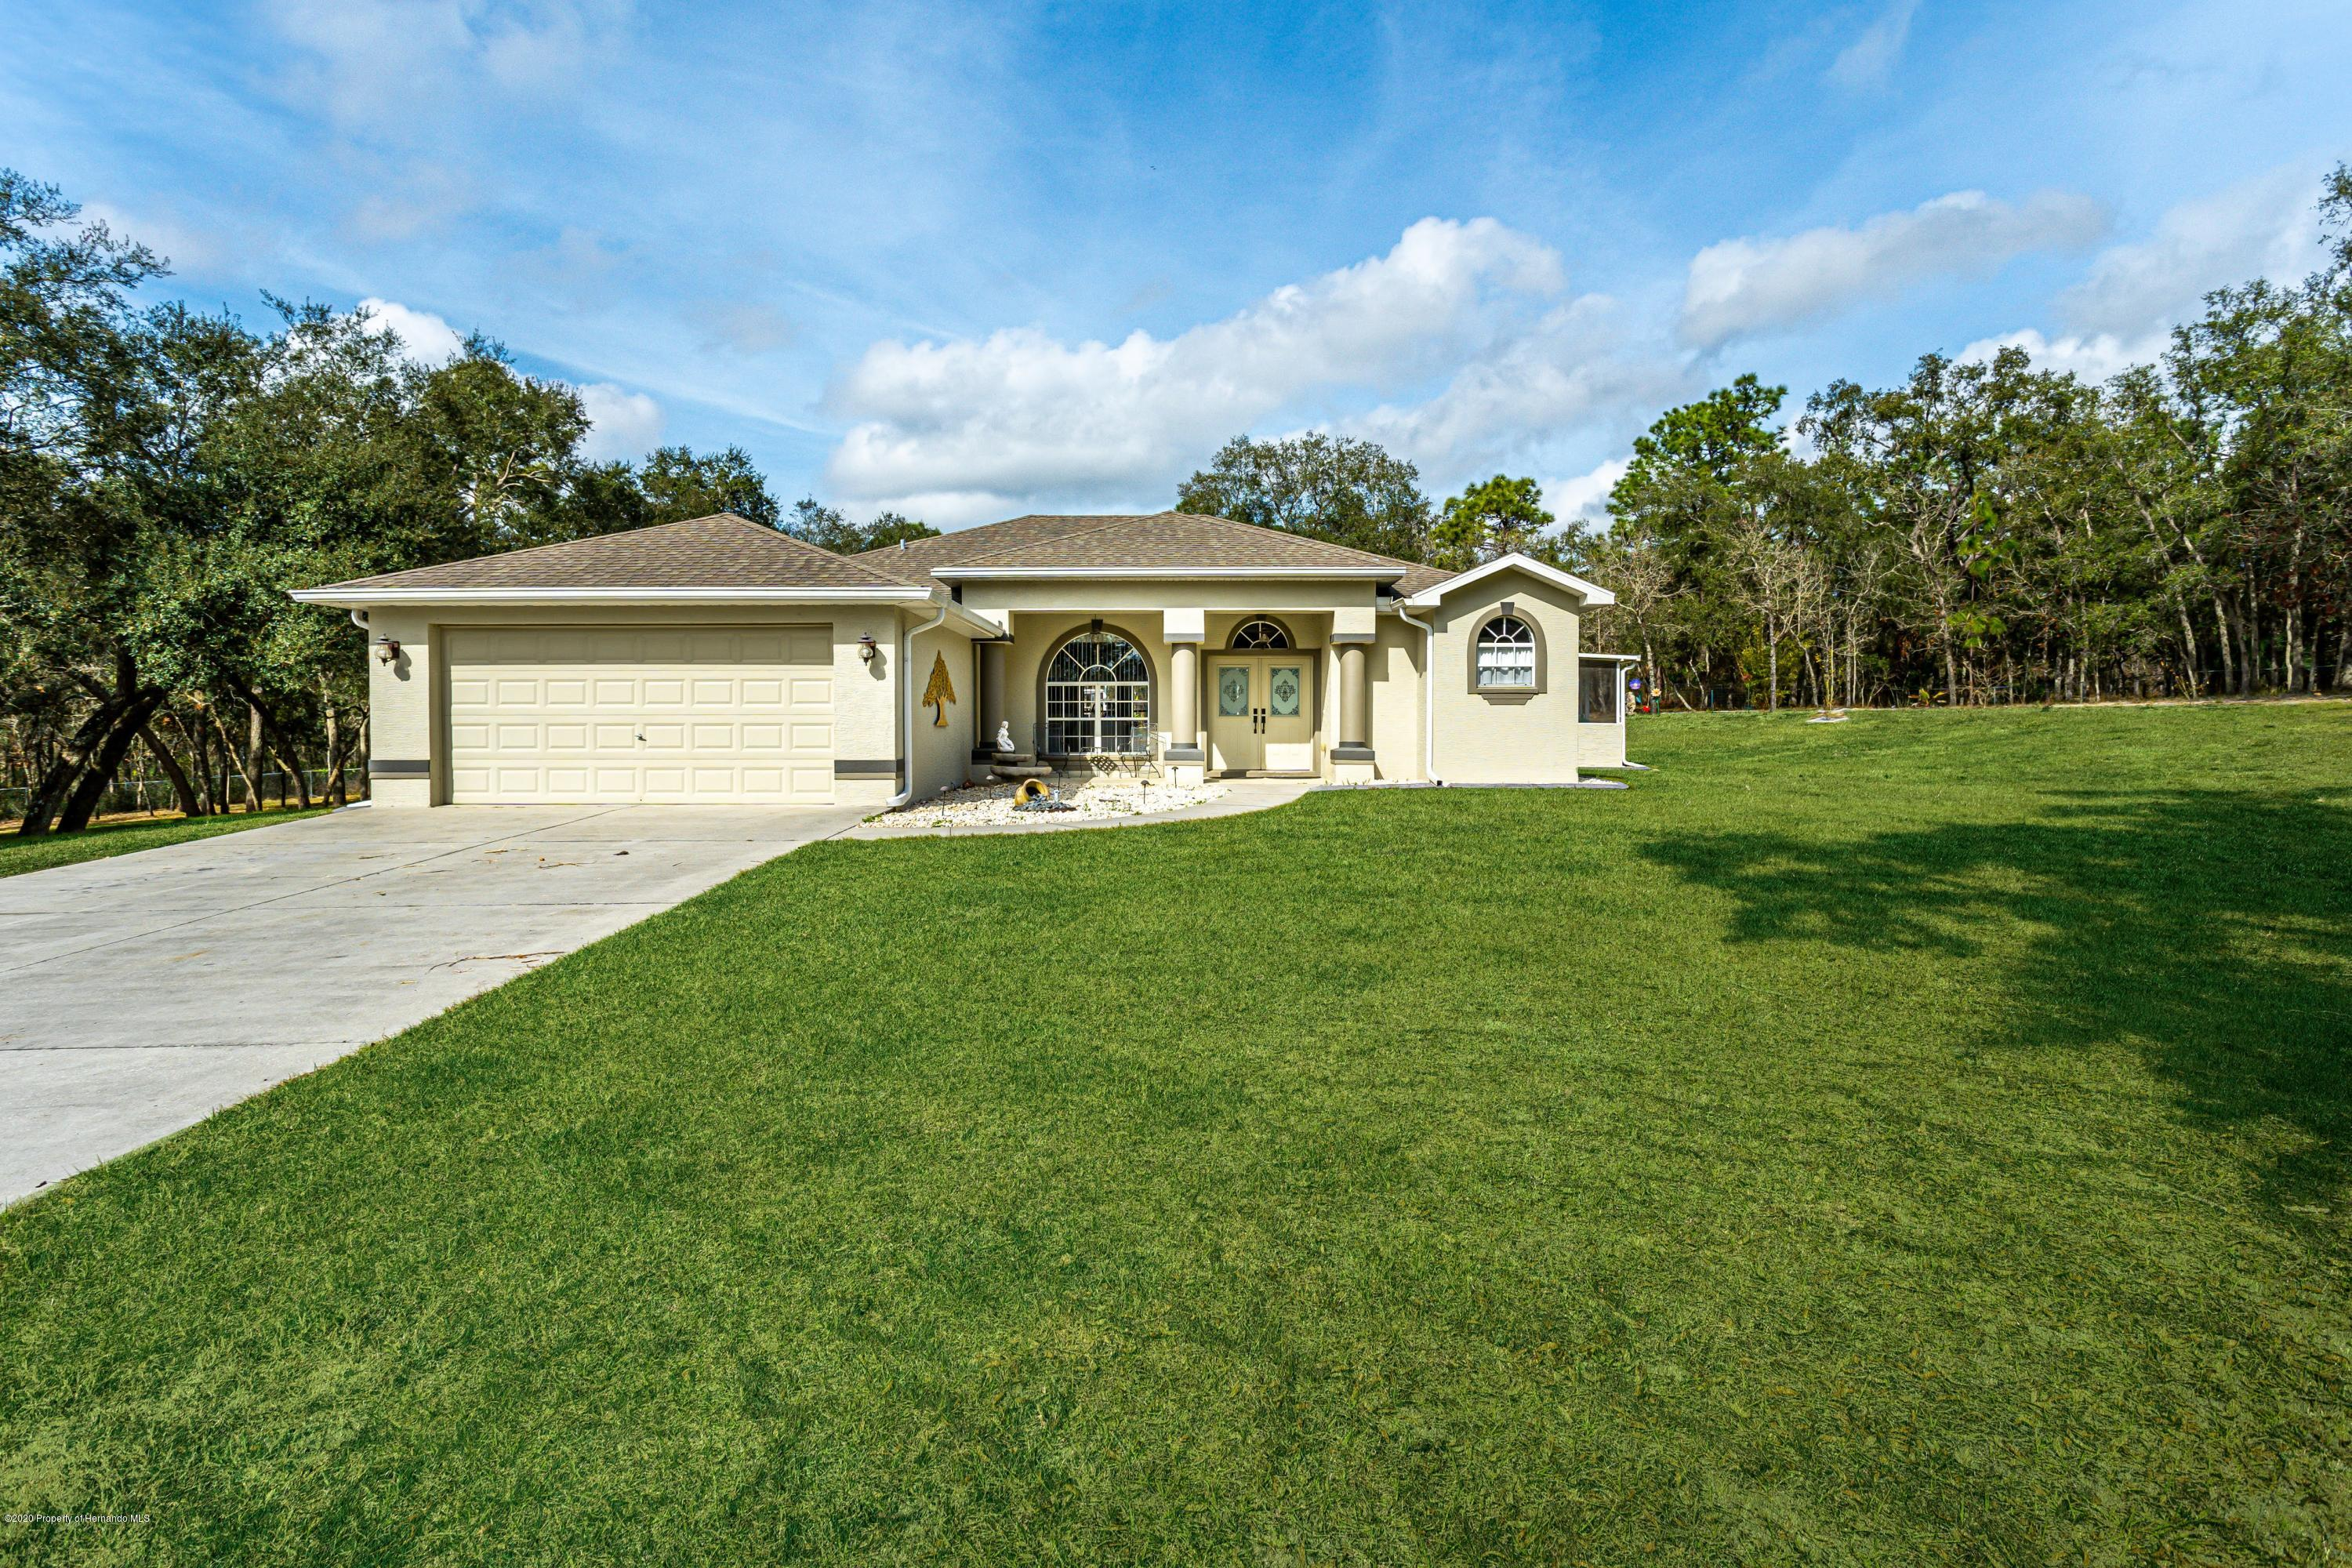 Image 2 For 14471 Eckerley Drive